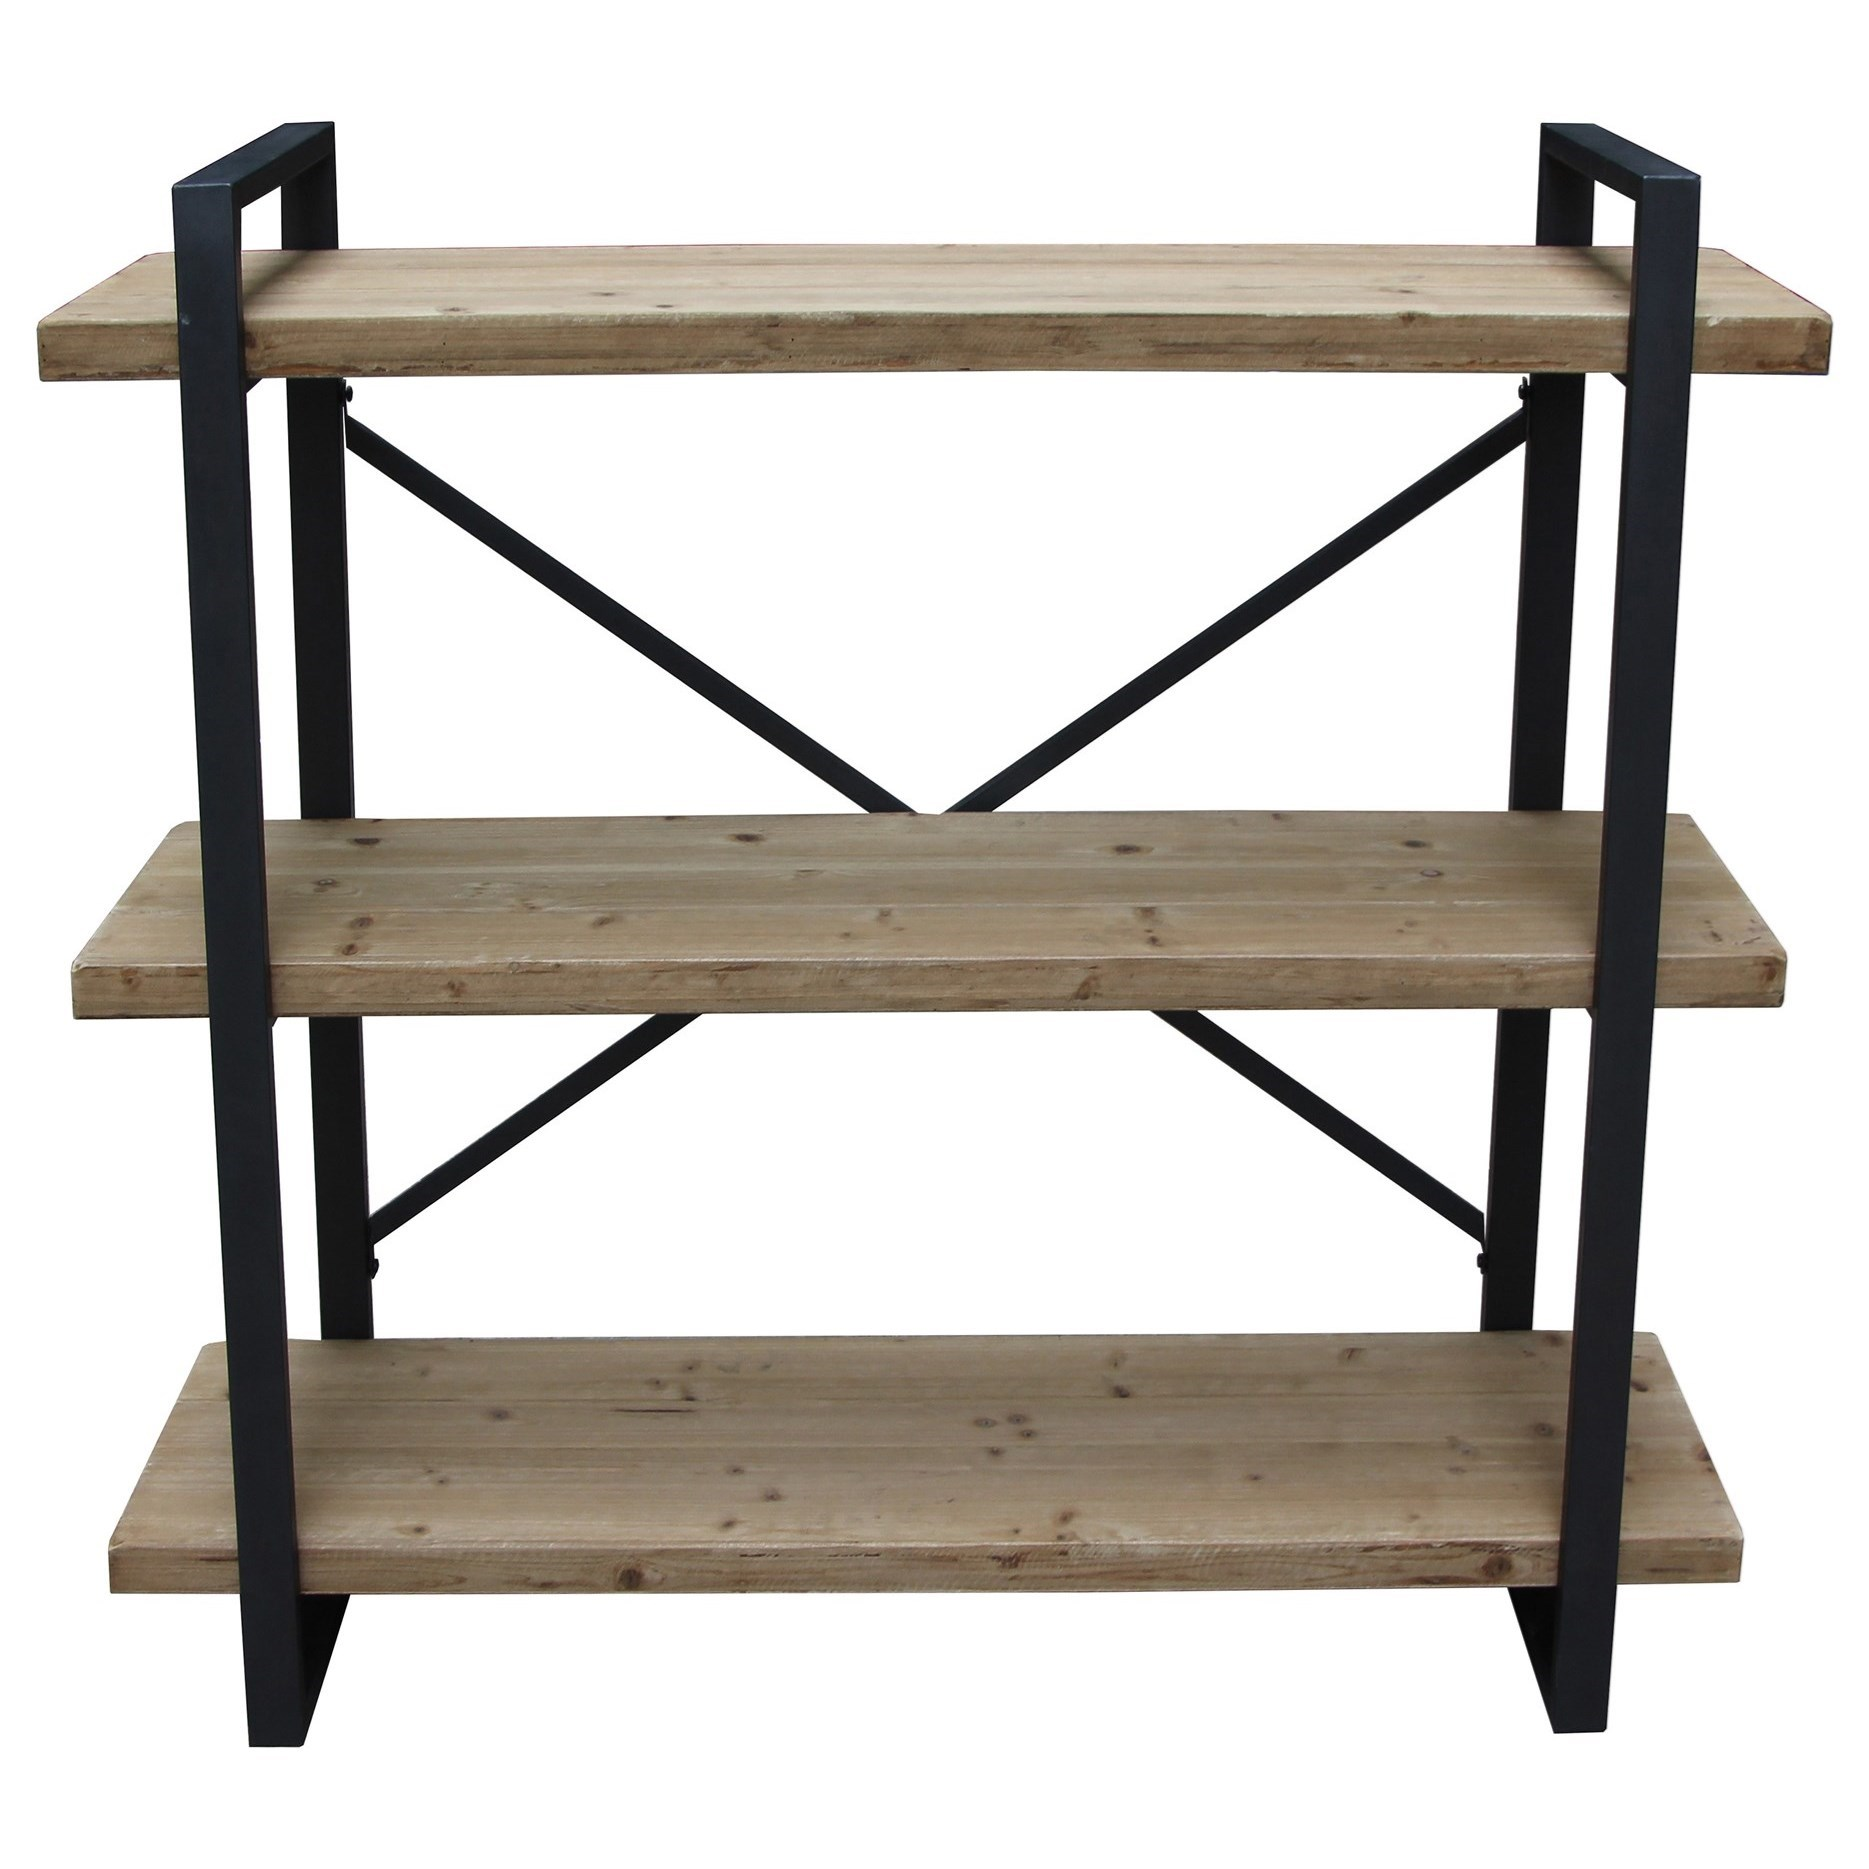 Lex 3 Level Shelf Natural by Moe's Home Collection at Wilson's Furniture